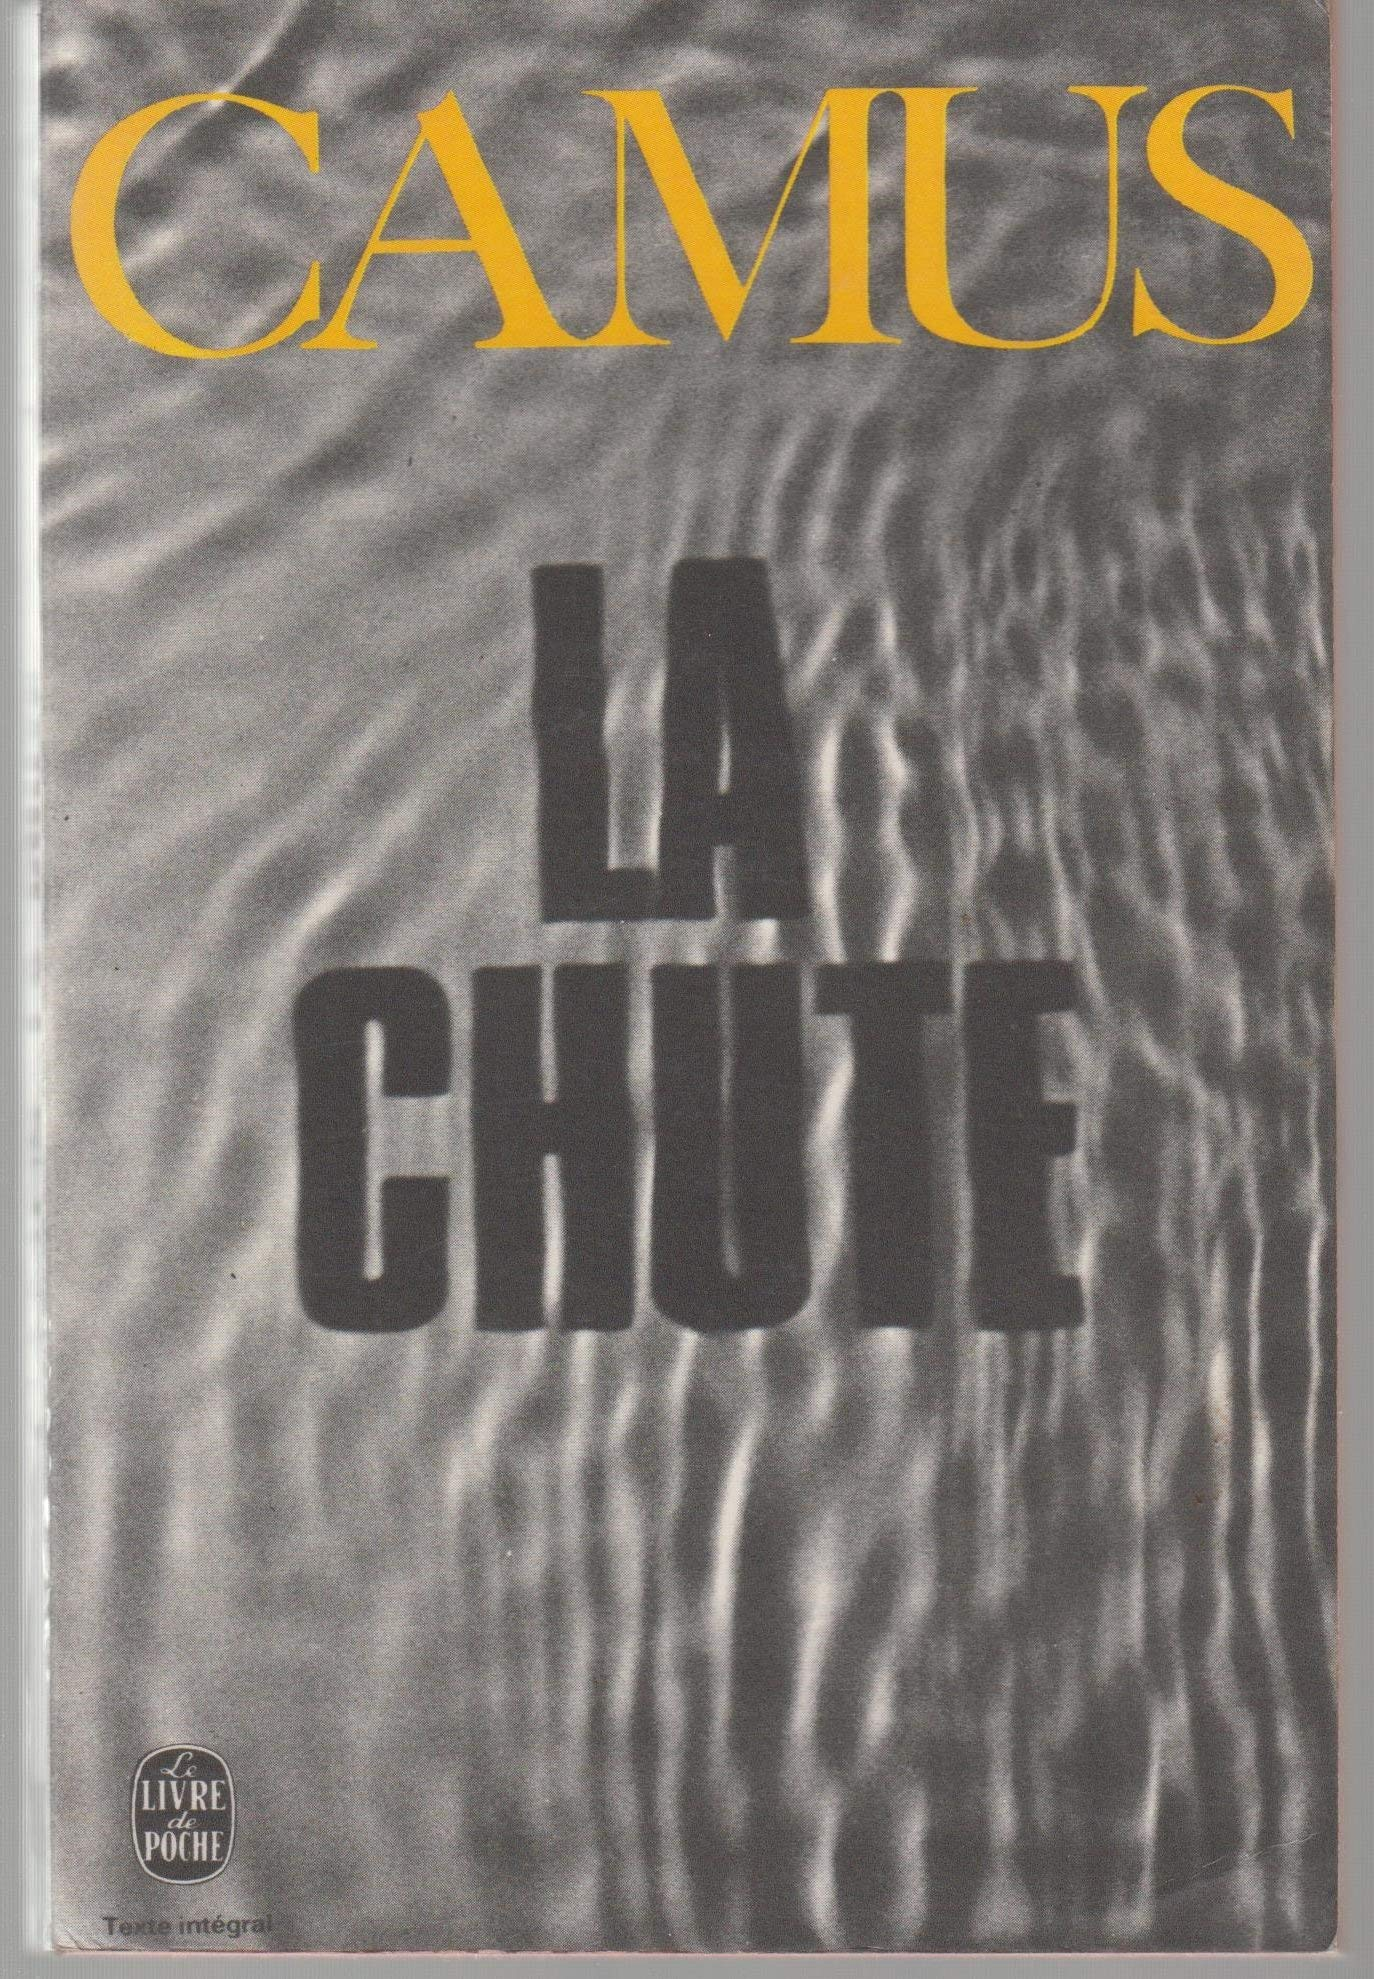 La Chute Camus Albert Amazon Com Books